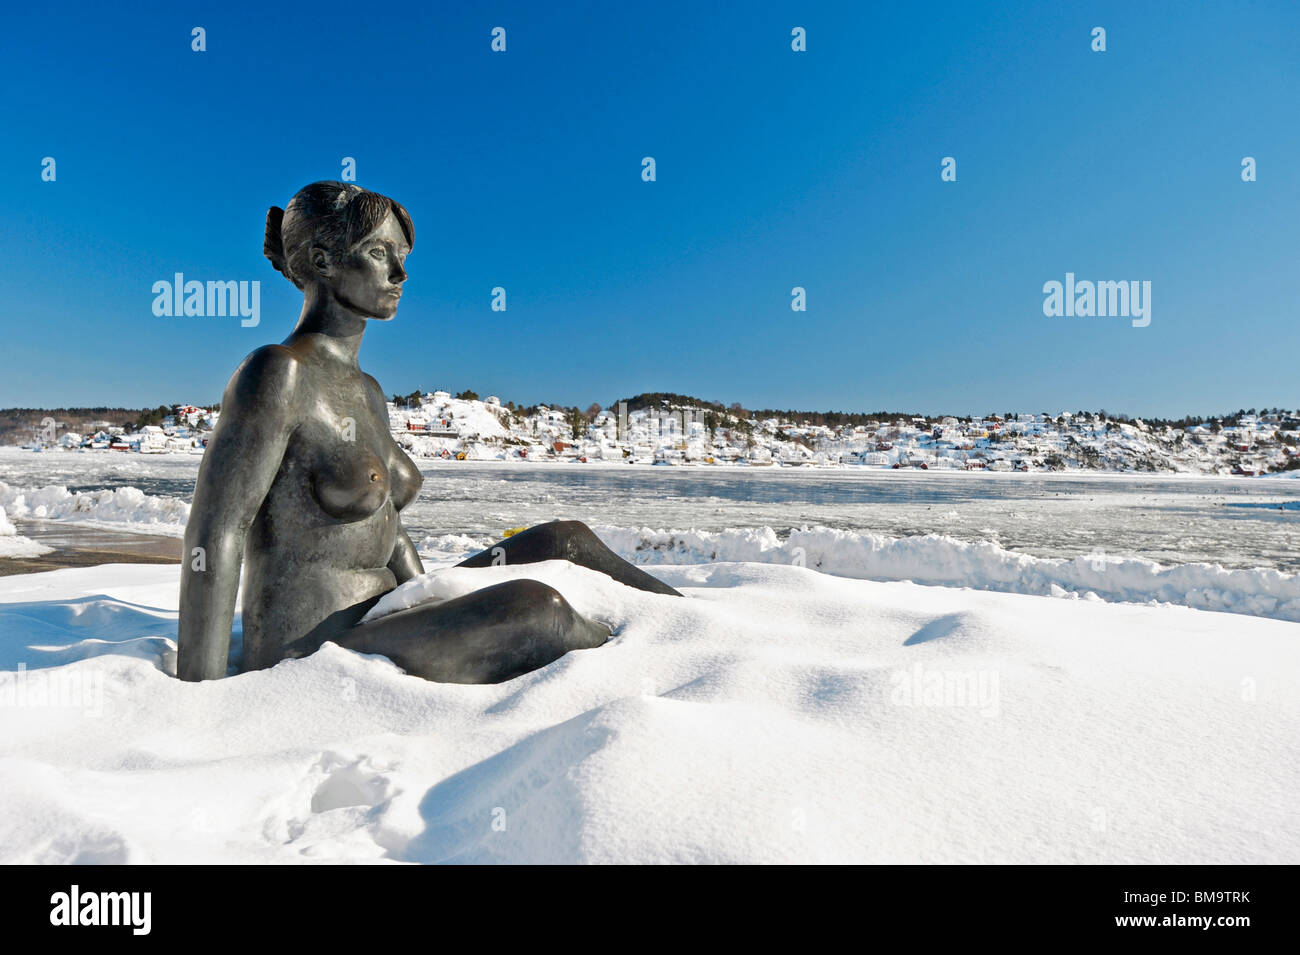 Statue in deep winter snow on the waterfront at Arendal with view across the frozen waters of the harbour - Stock Image